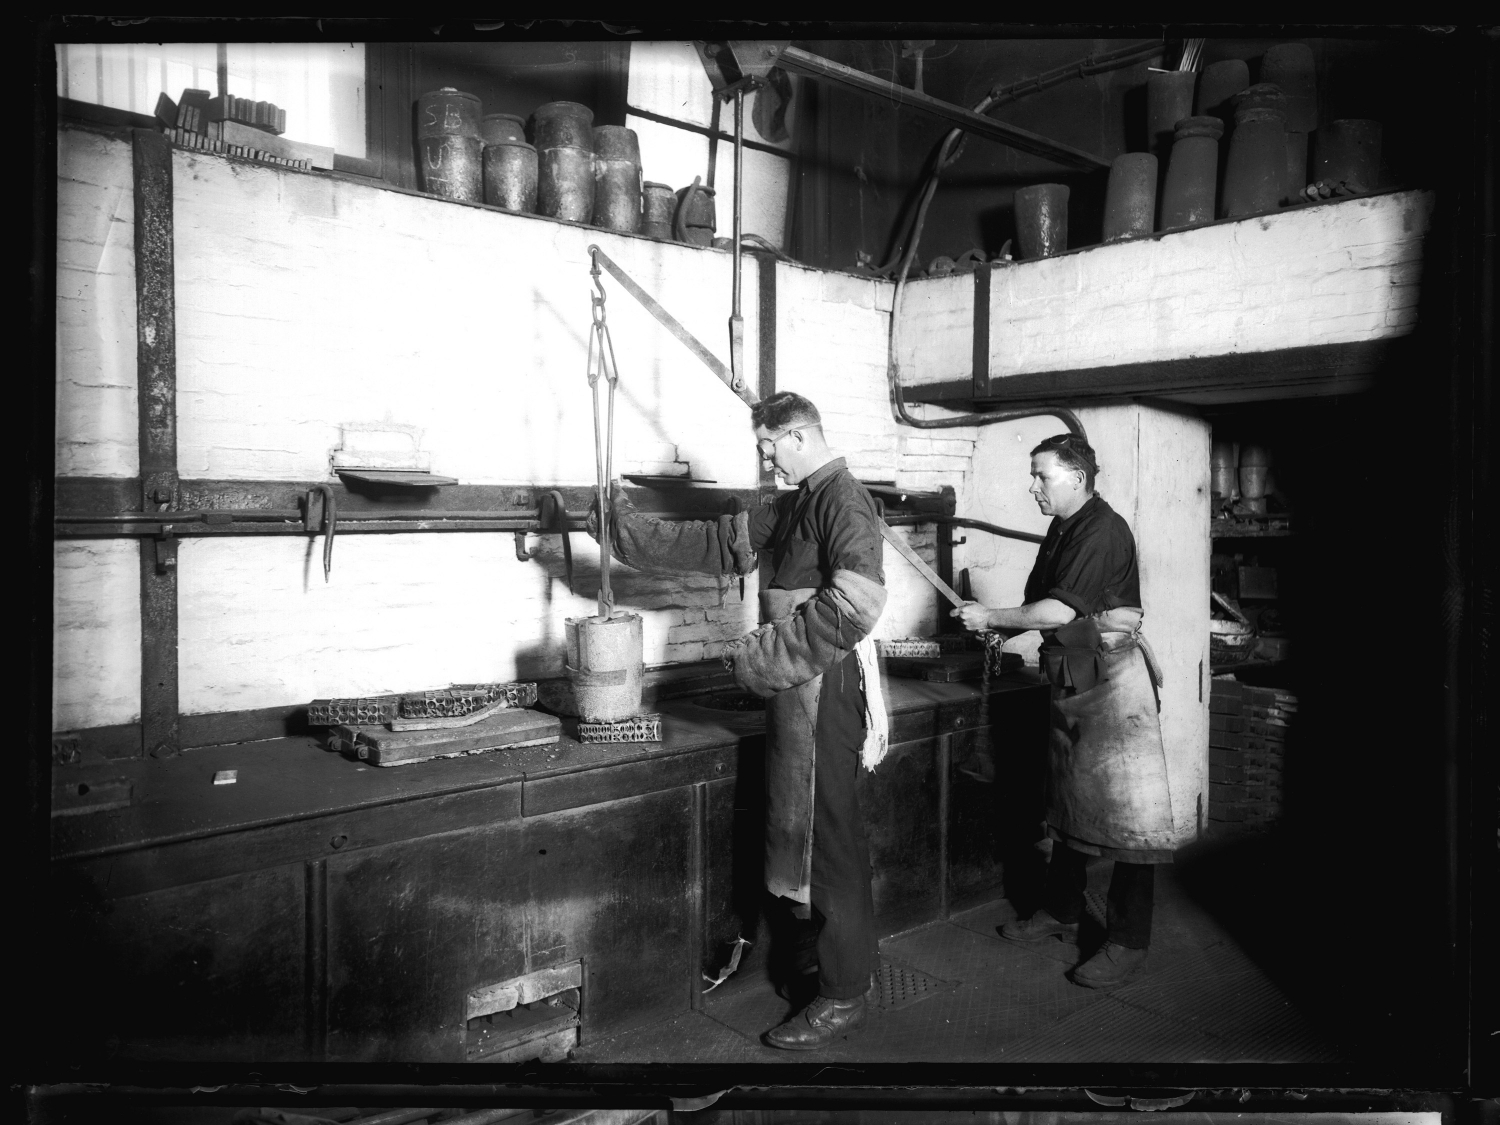 Black and white photo of two men at bench working.